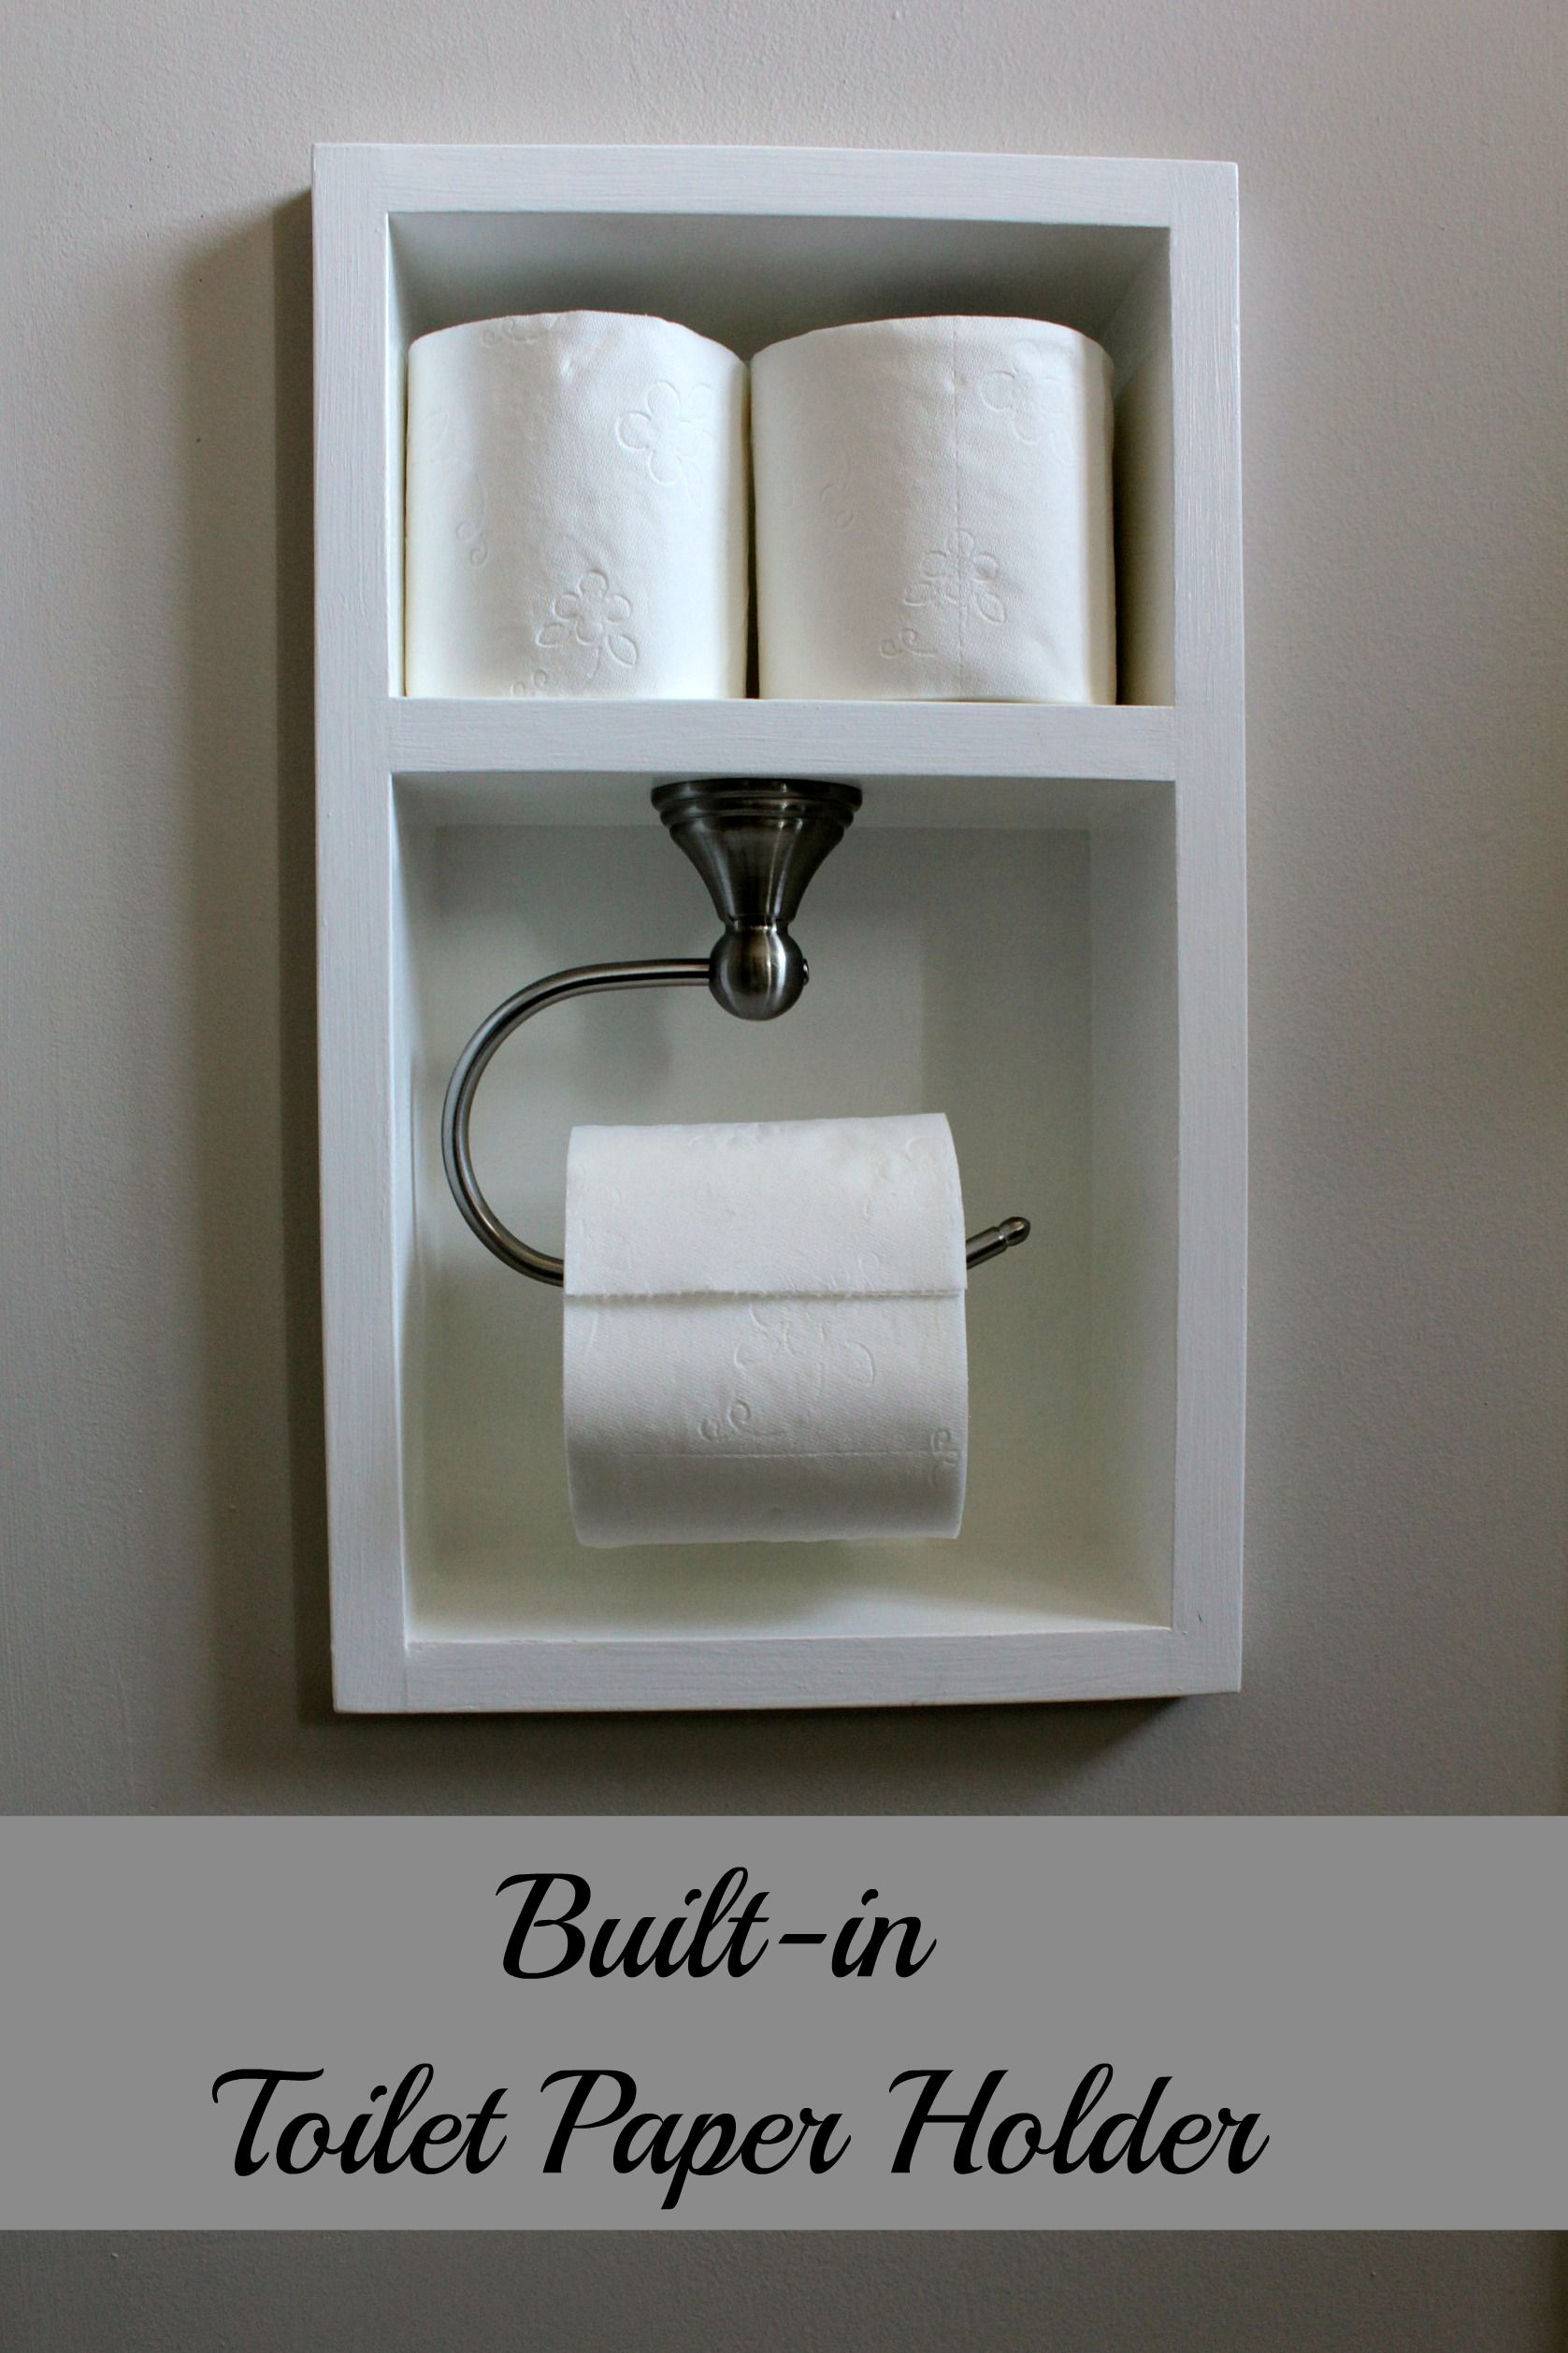 Recessed Toilet Paper Holder Aka Working With Small Spaces Recessed Toilet Paper Holder Diy Toilet Paper Holder Diy Toilet